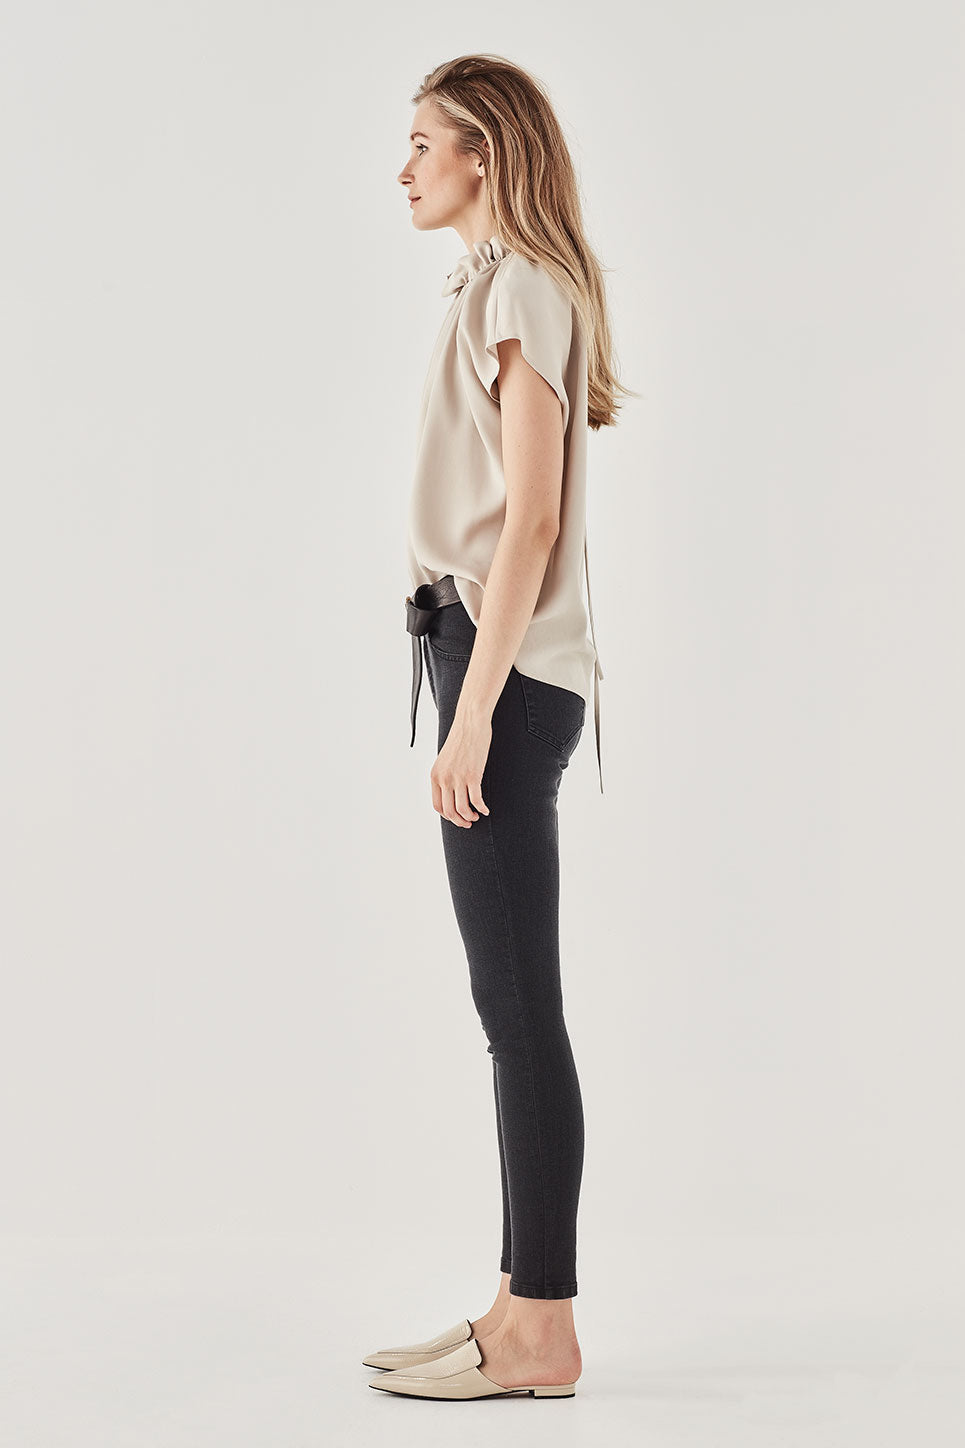 The Ondine Top in Stone